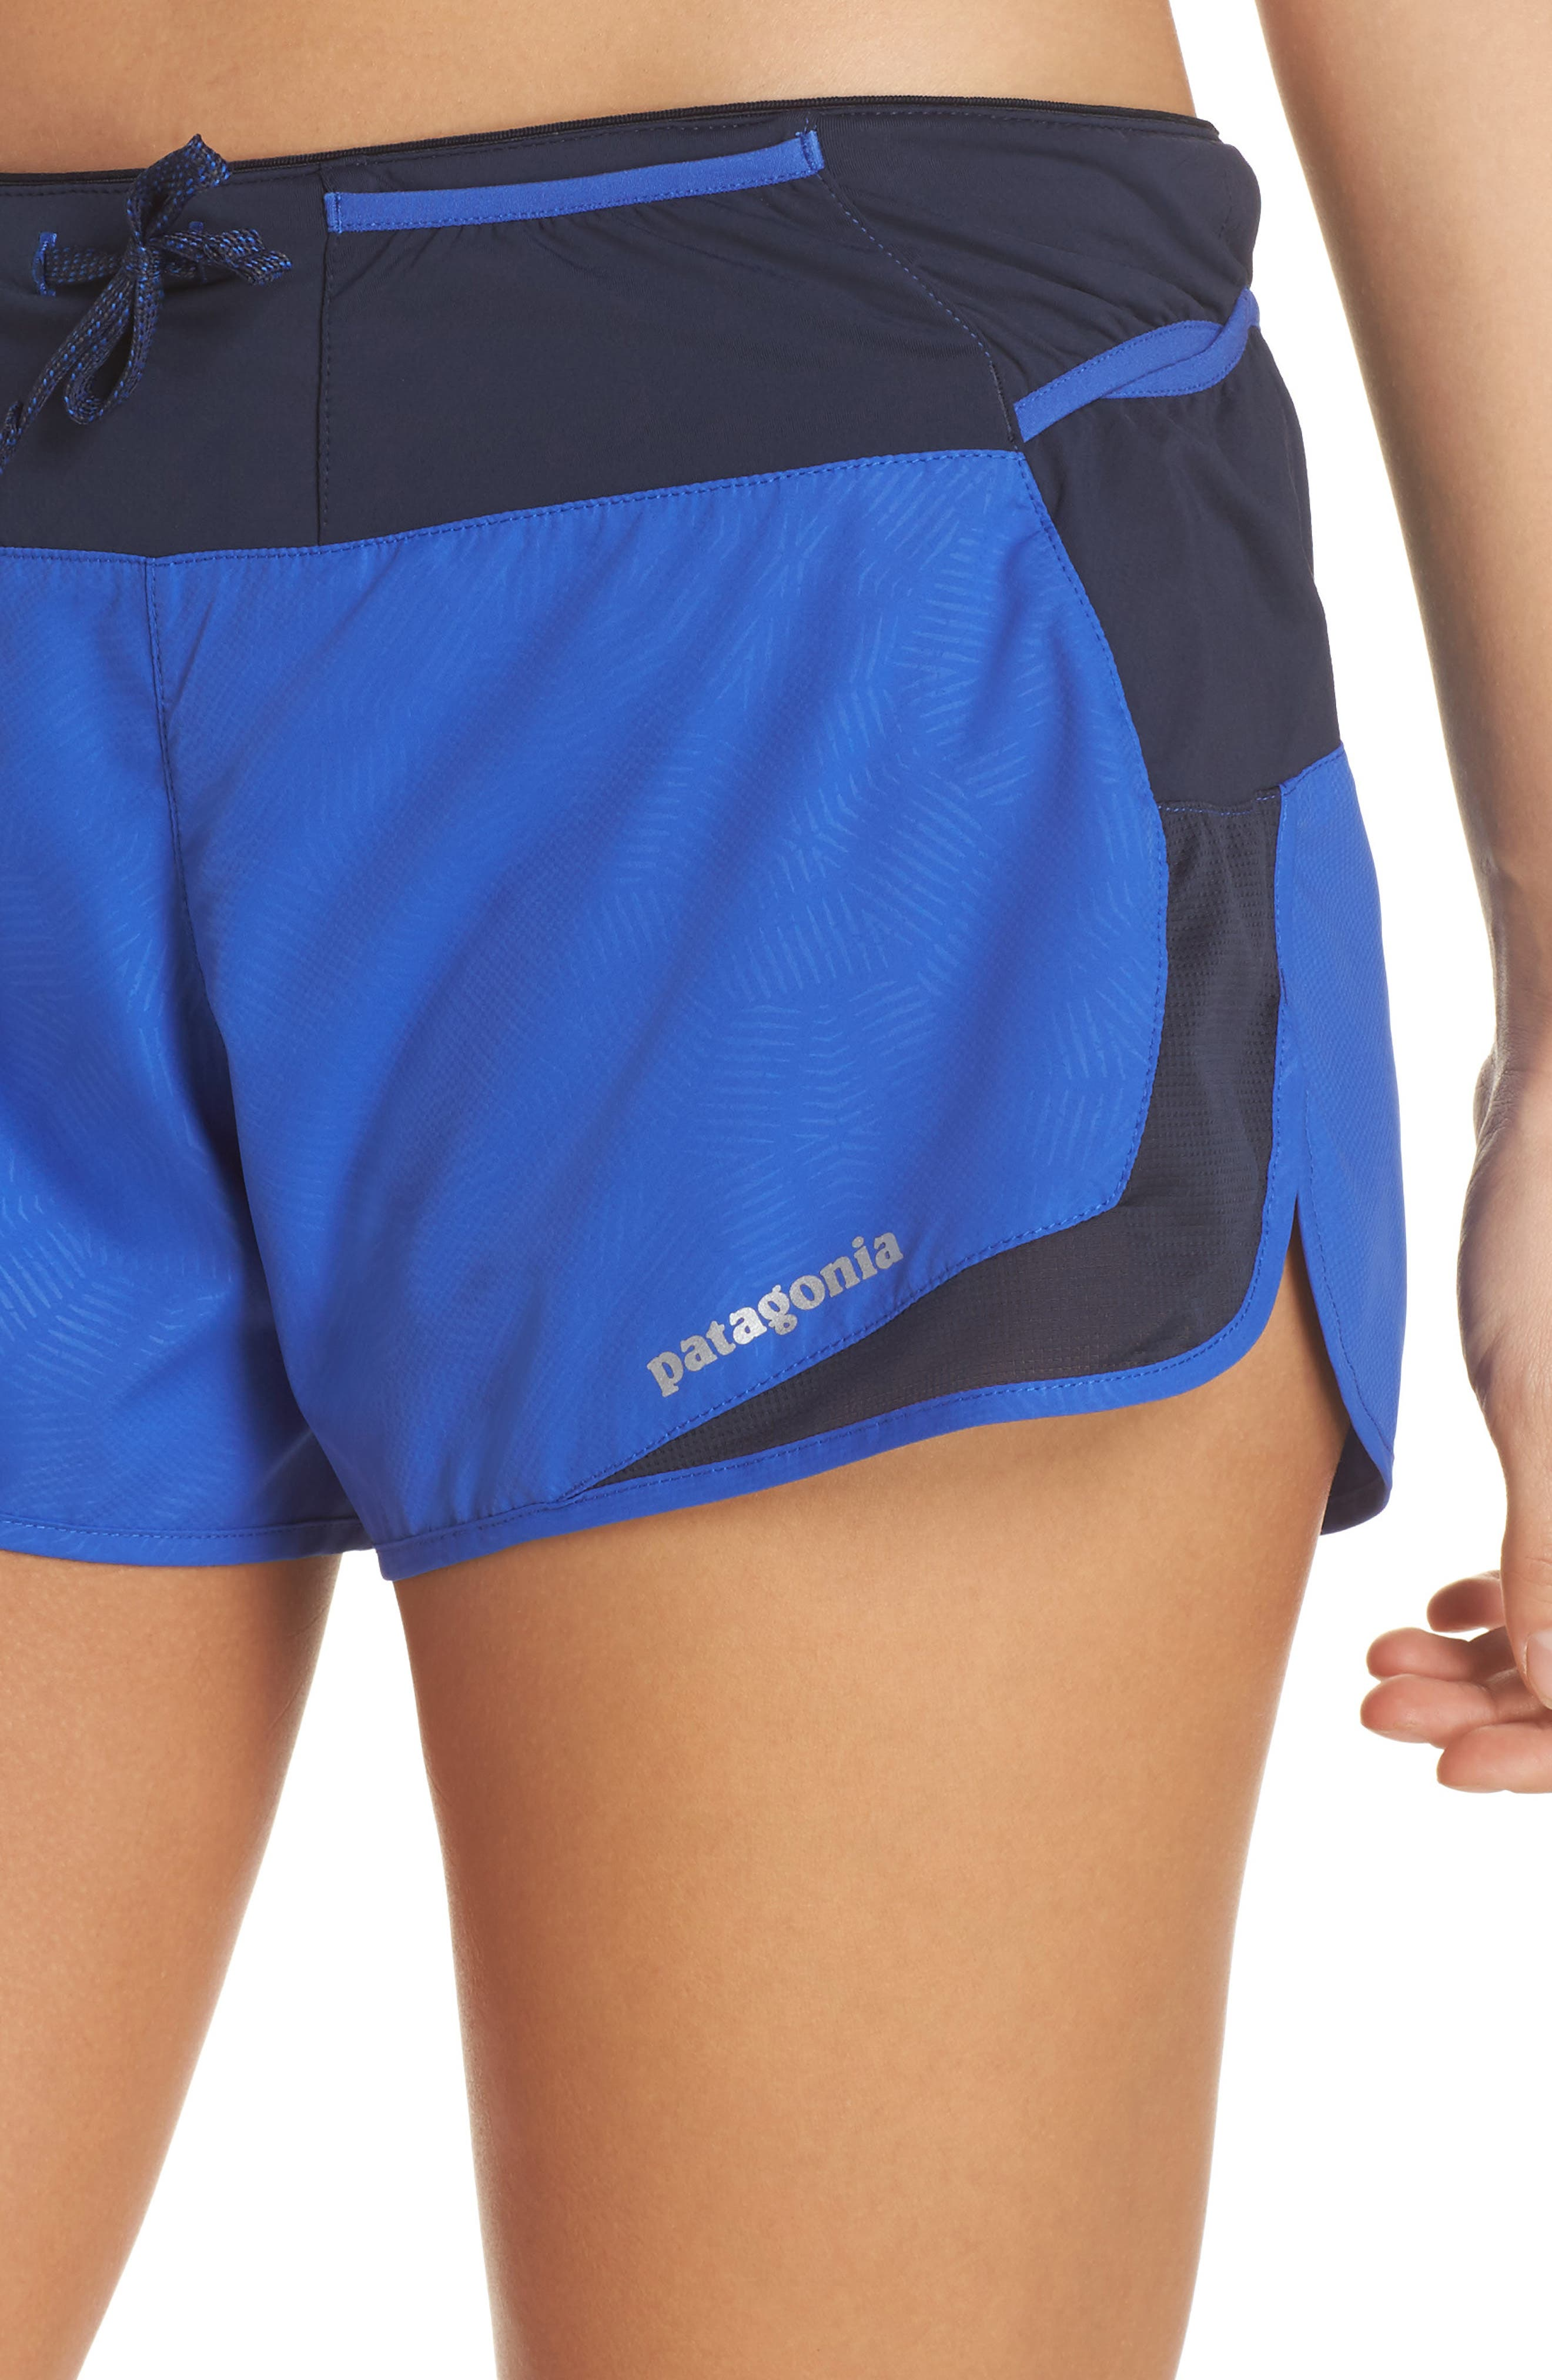 Strider Pro Trail Running Shorts,                             Alternate thumbnail 4, color,                             Hexy - Imperial Blue